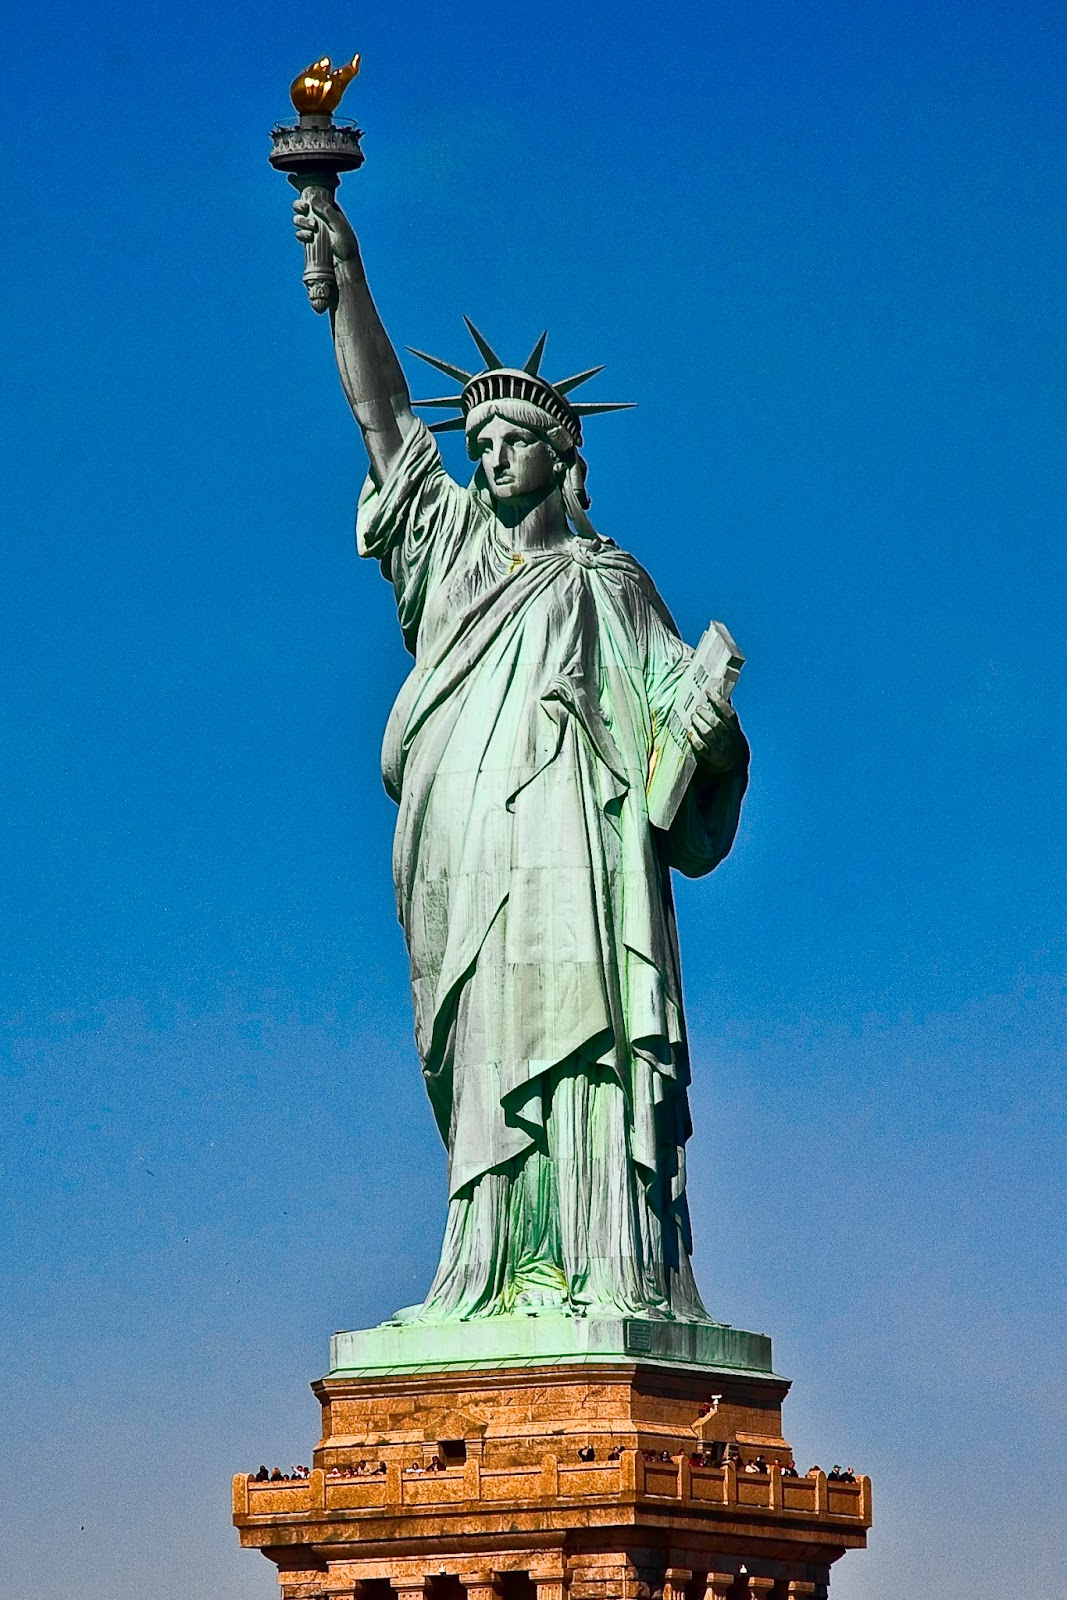 """the new colossus by ezra lazarus """"the new colossus"""" is a poem about america, but it is also a poem about the feminine virtues of hospitality and charity by allow the statue to speak for herself, the speaker proposes a way to think about others from which all women can learn."""